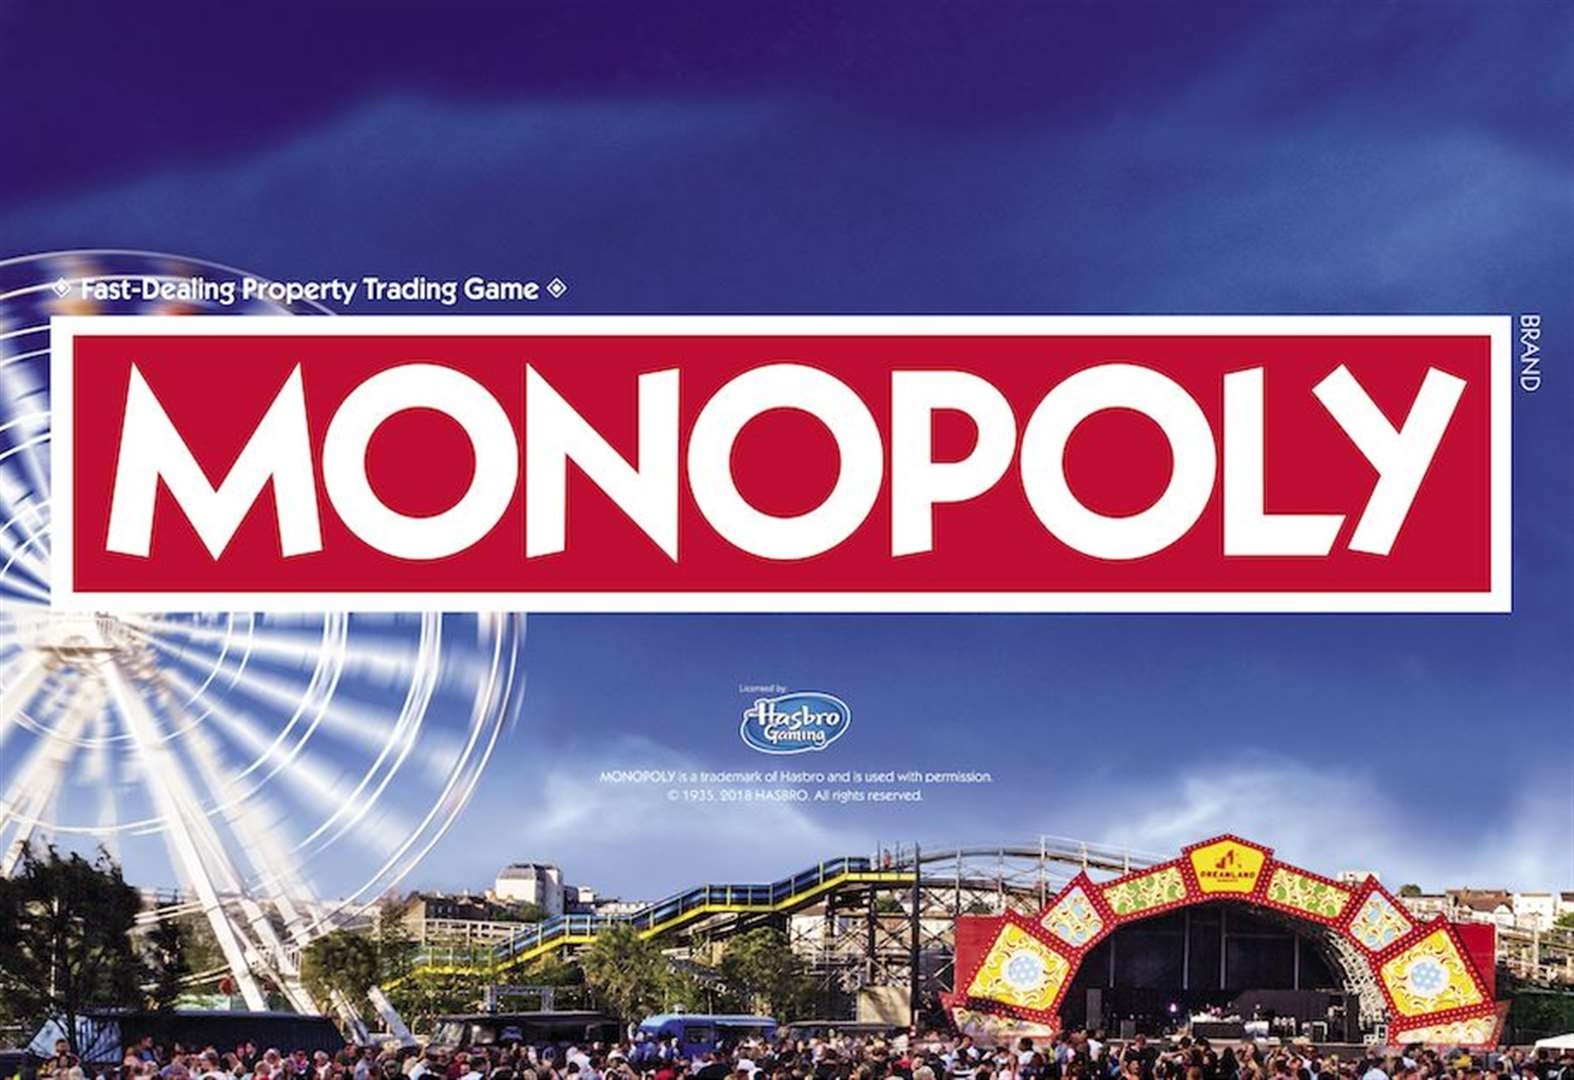 Monopoly mania in Margate